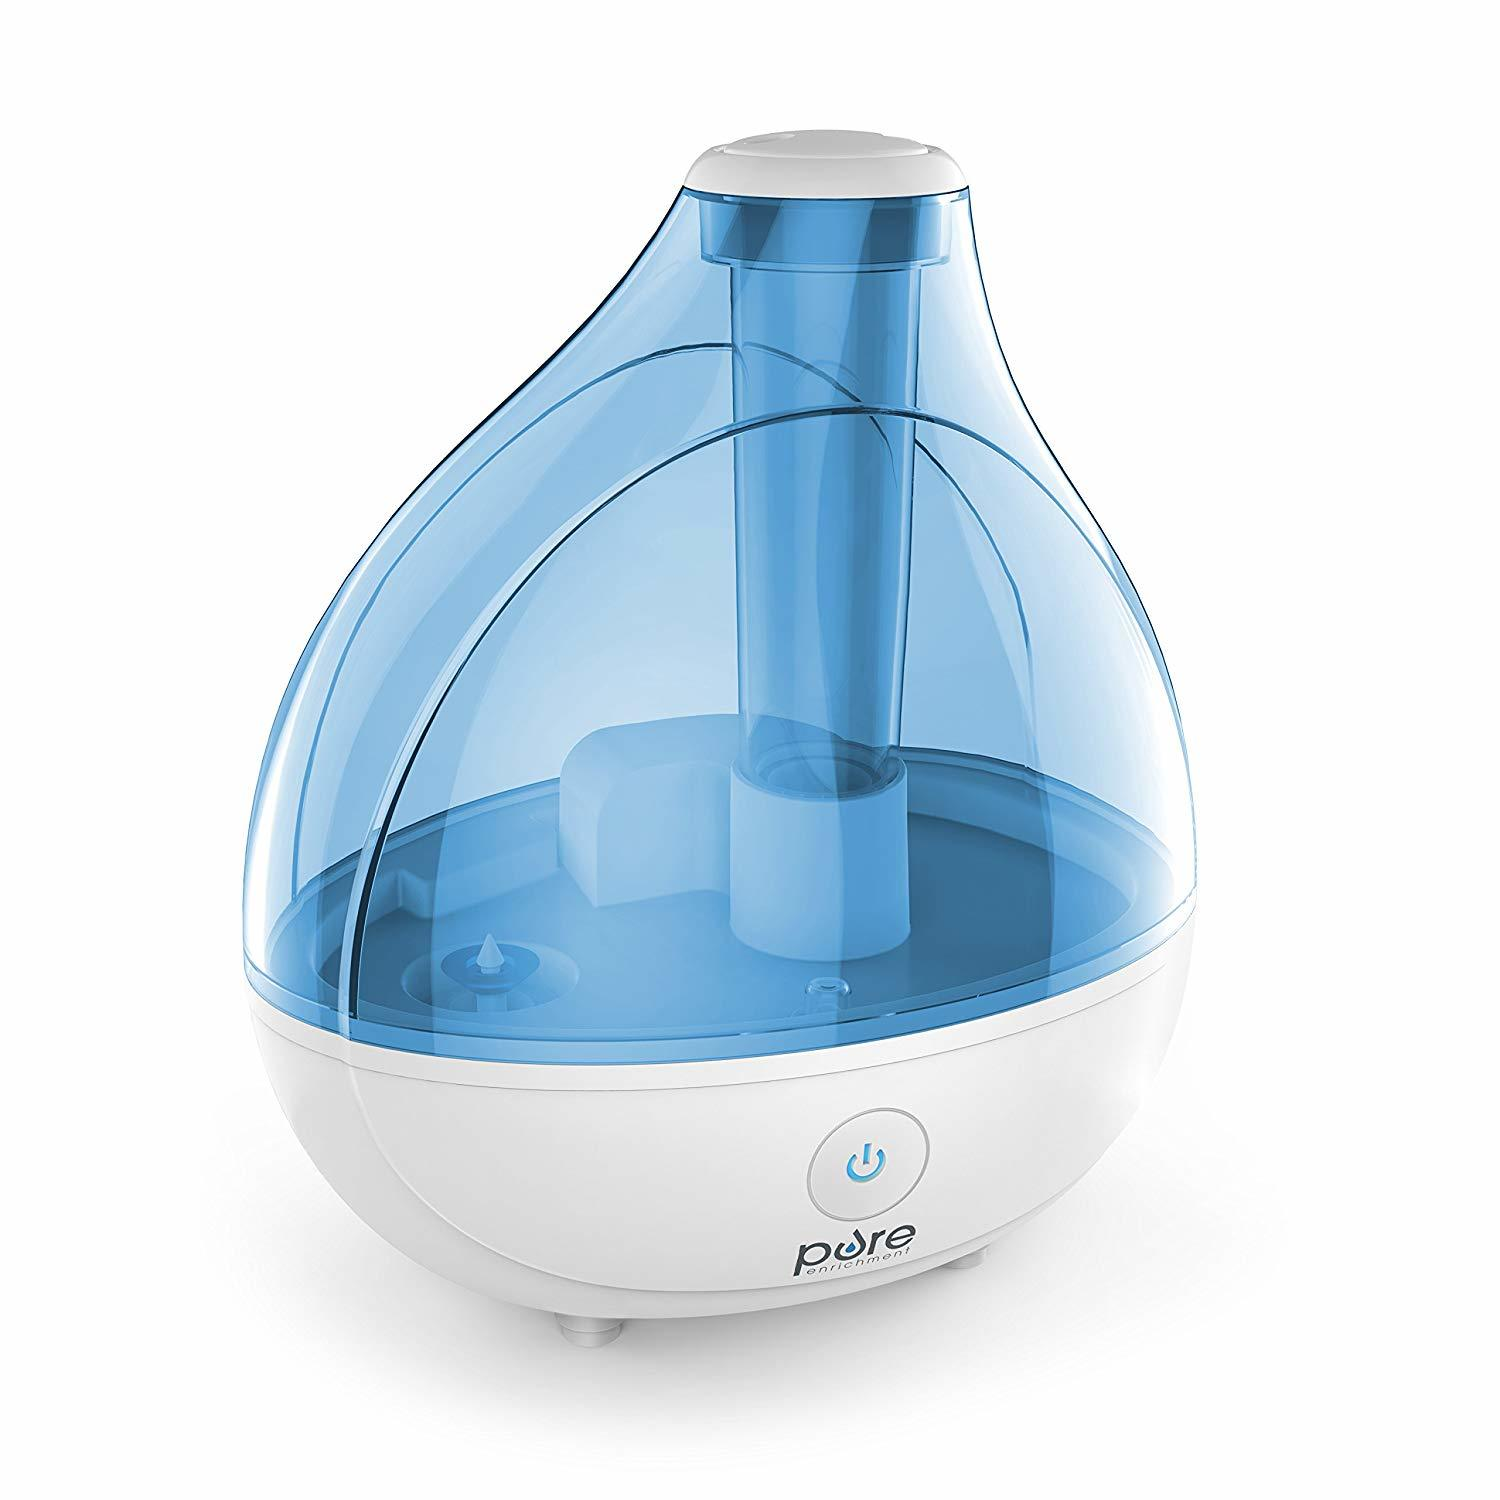 This Cool Mist Humidifier Best for Baby Nursery